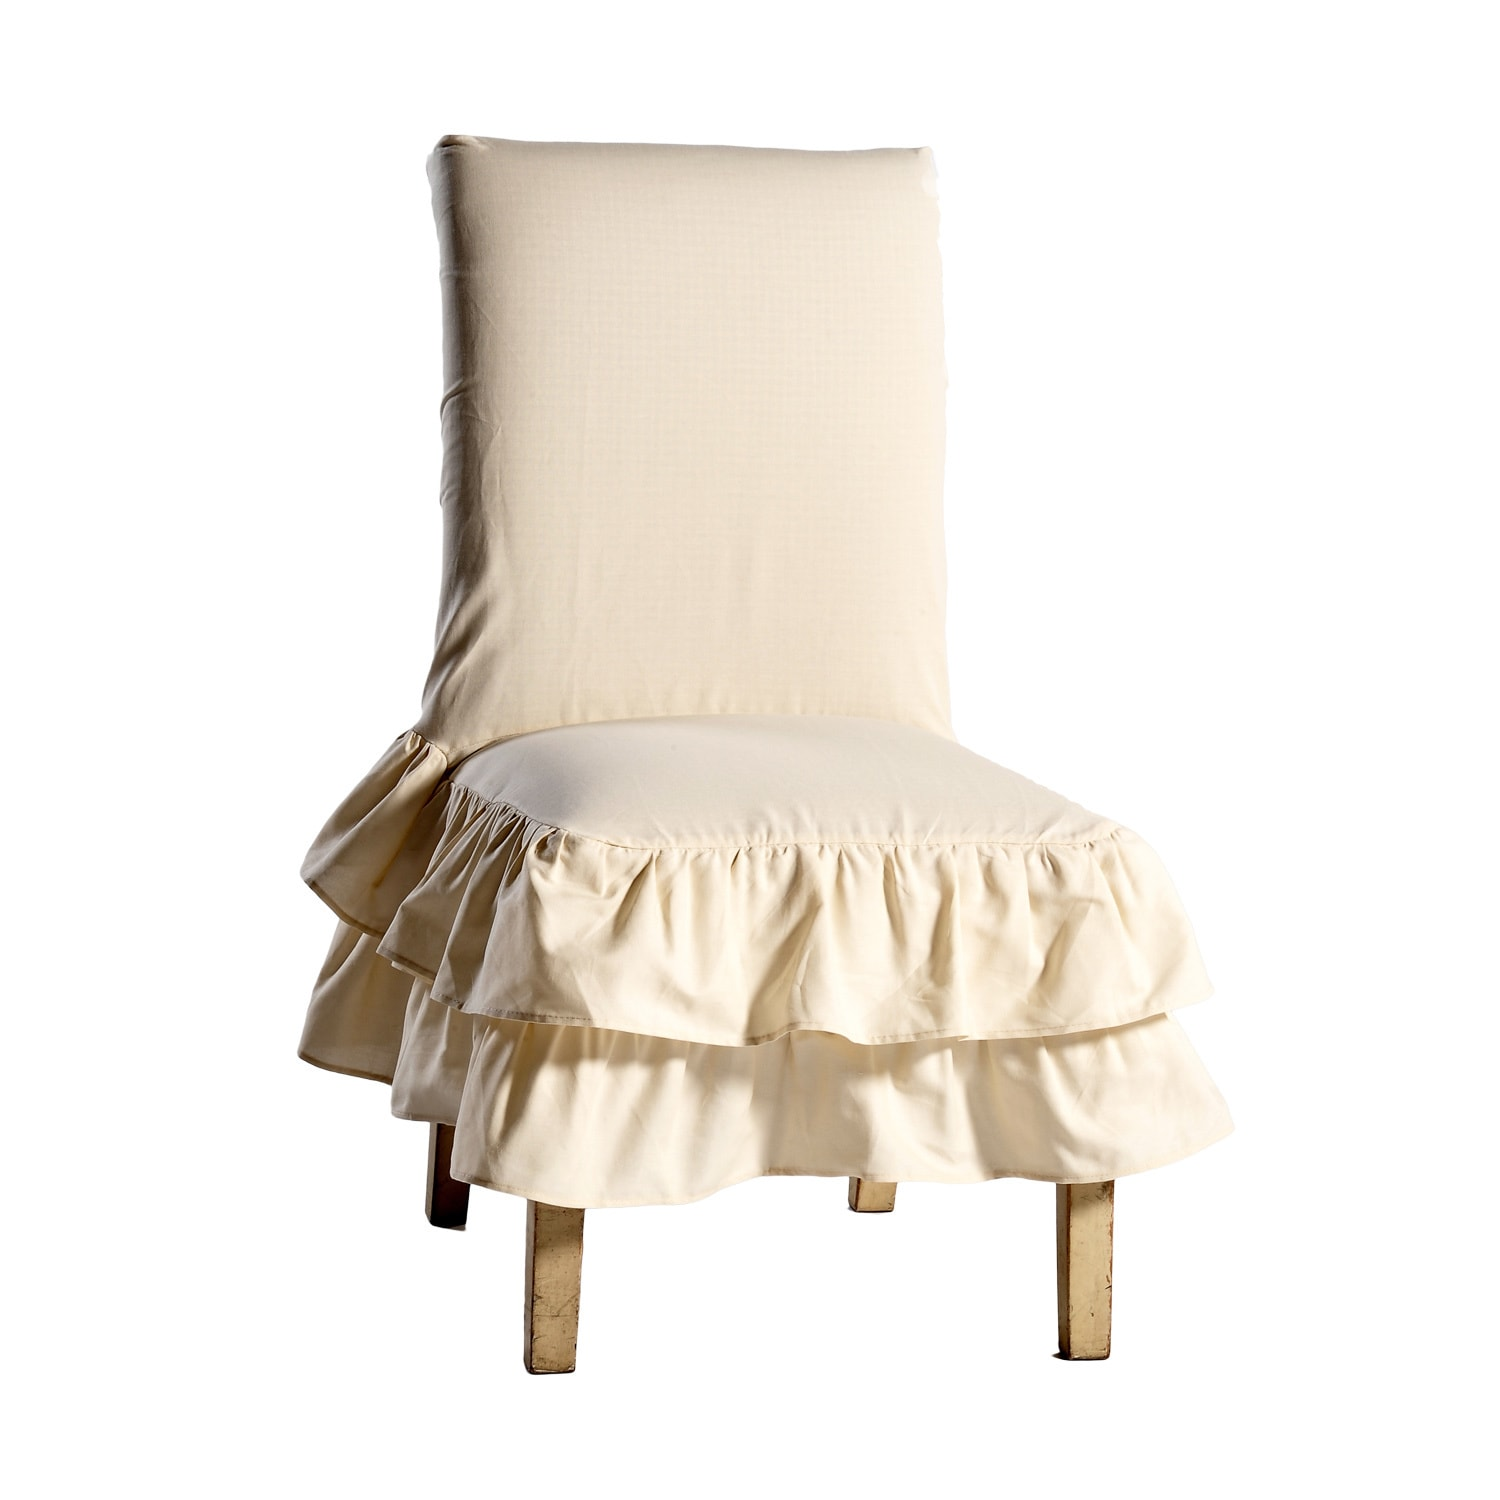 Dining Chair Slipcover Cotton Tiered Ruffled Dining Chair Slipcover